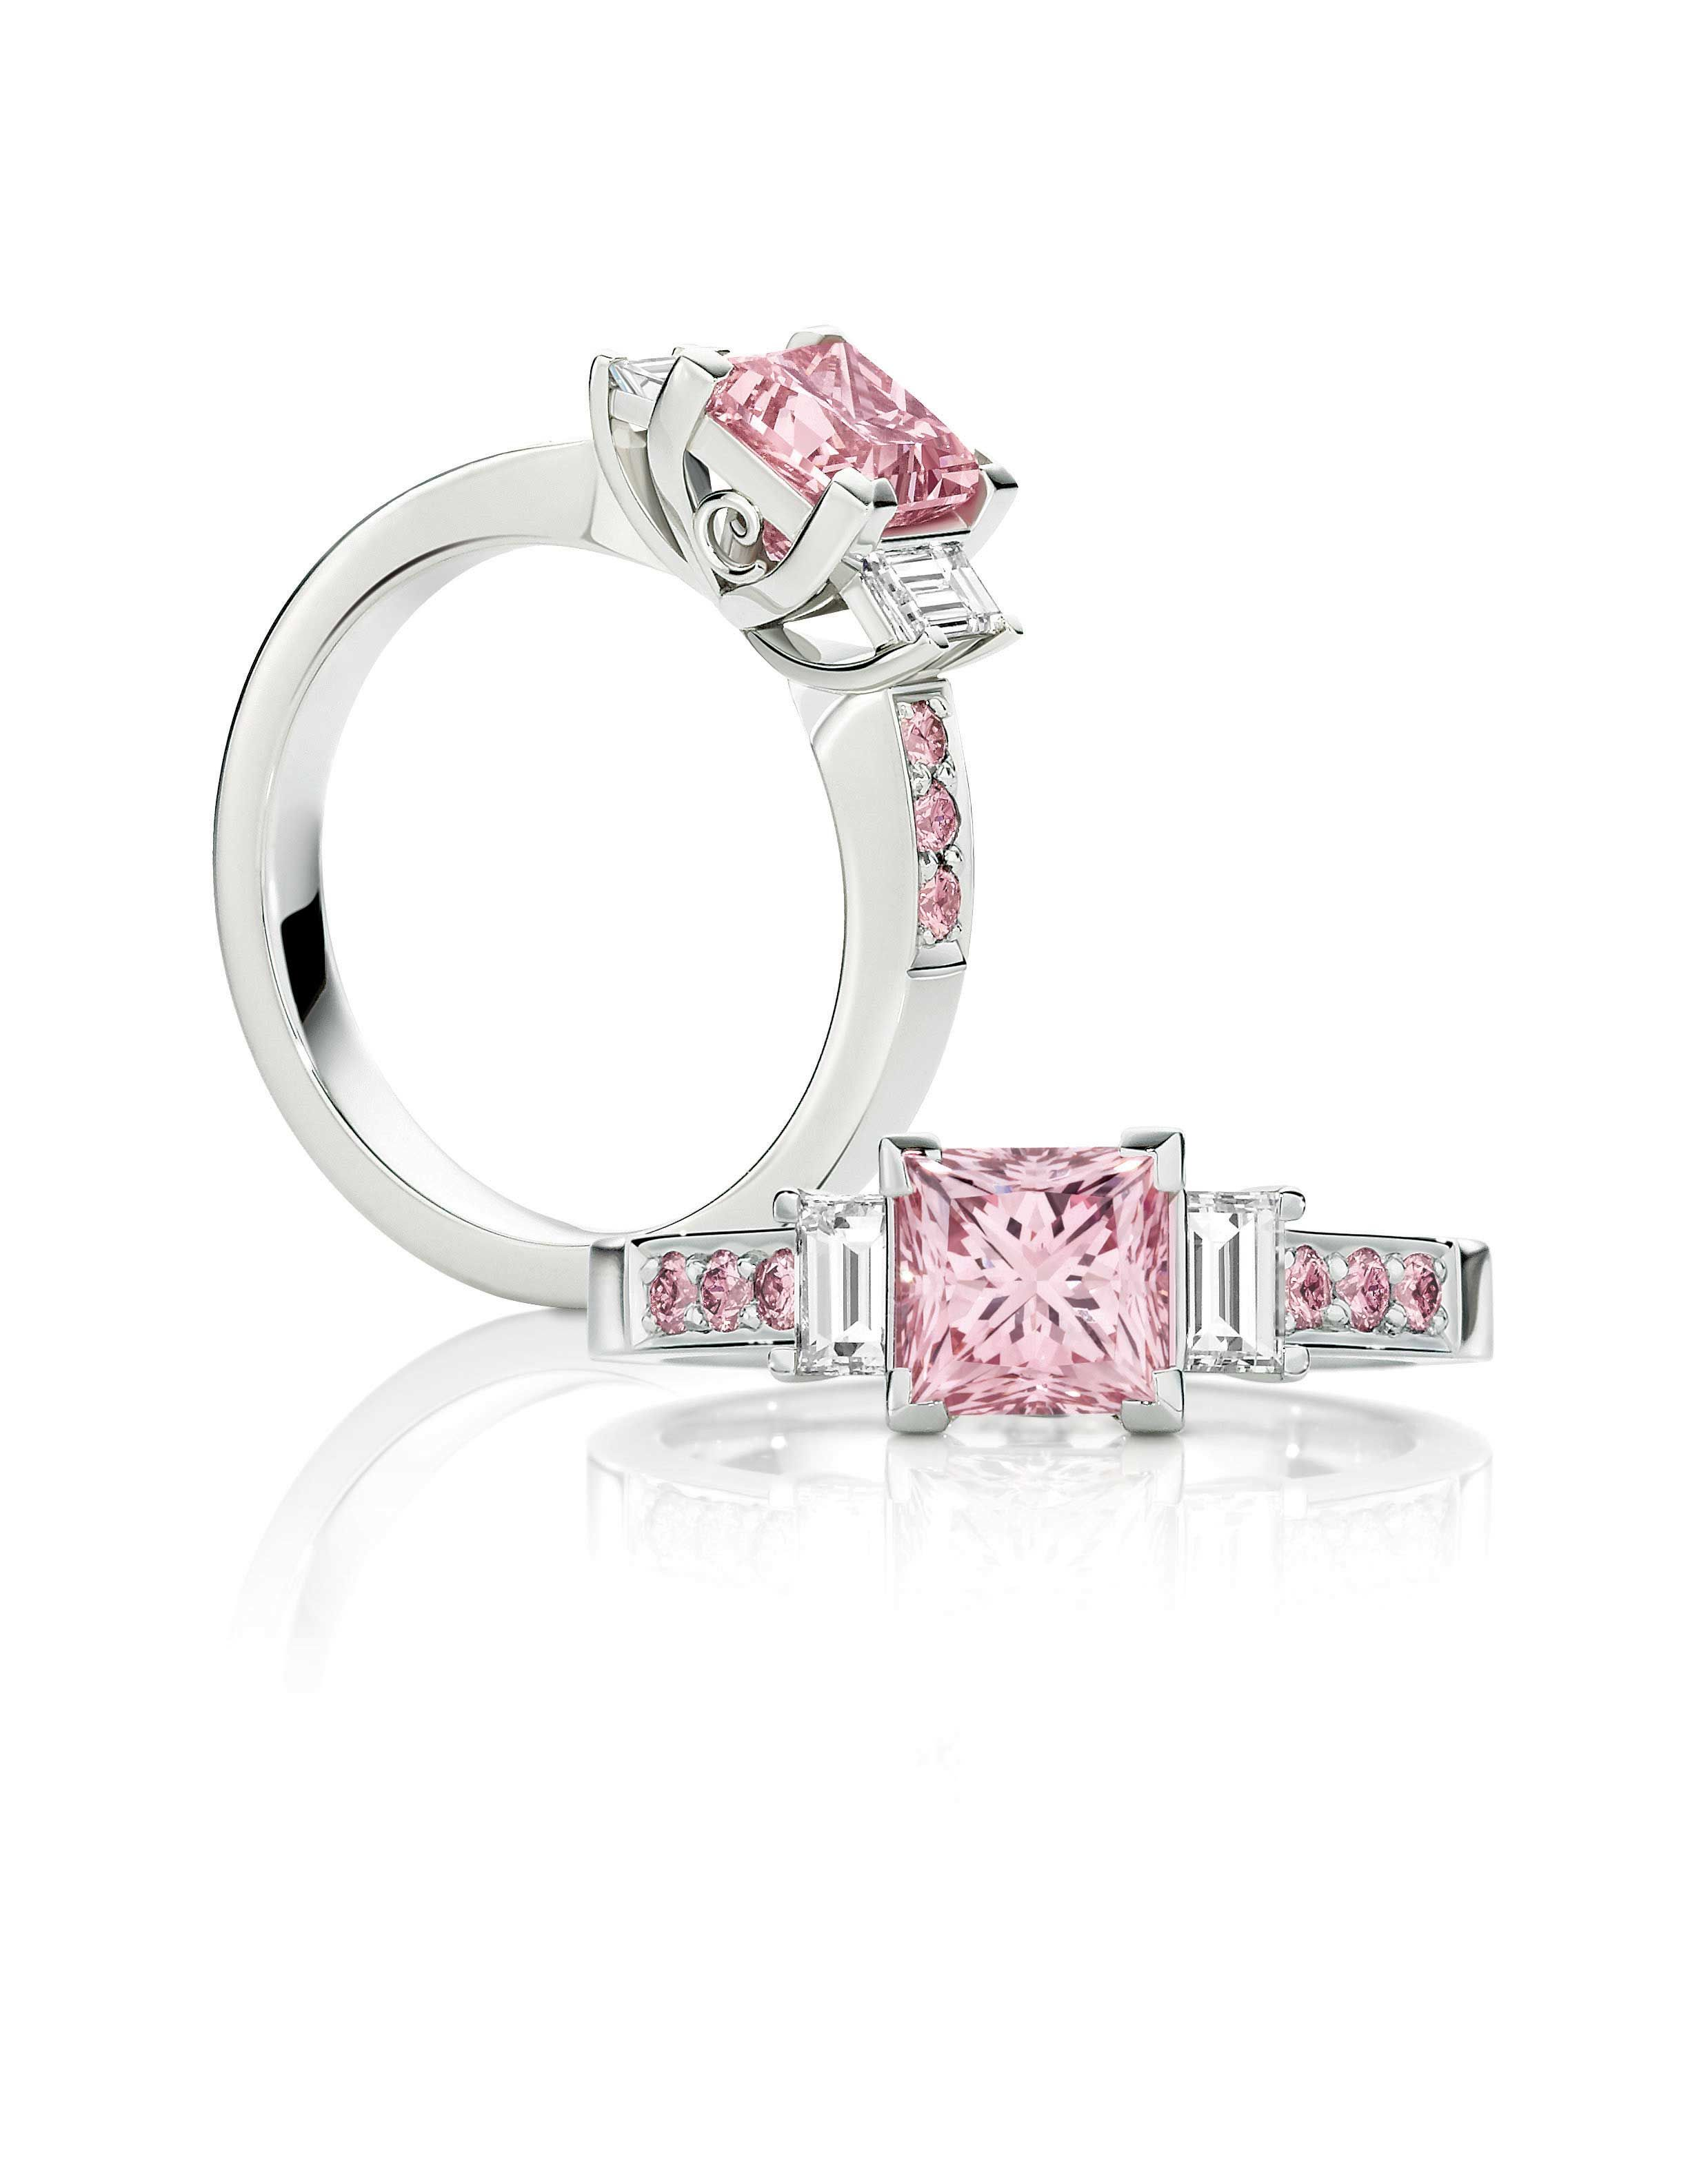 set diamond christie rectangular cornered rings cut weighing a impressive pinterest fancy s pink modified pin ring colored an just with approximately diamonds carats intense